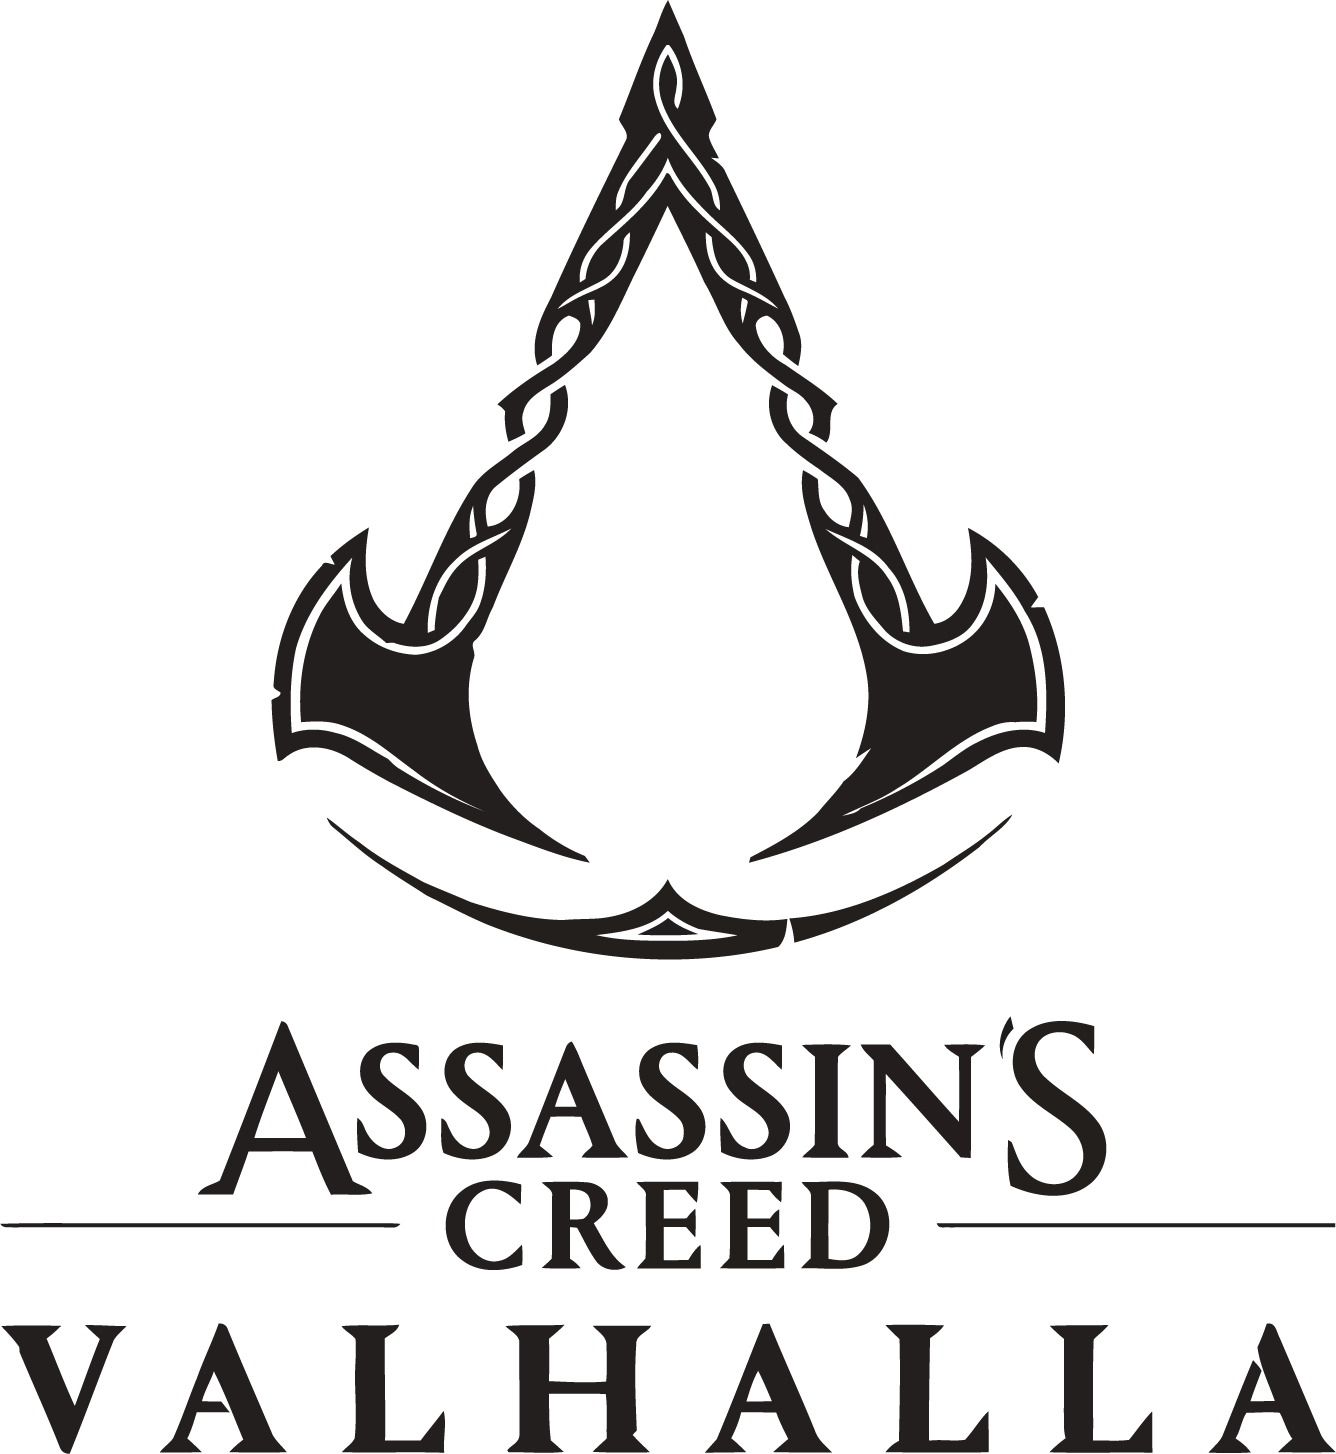 Assassin S Creed Valhalla Logo In 2021 Creed Assassin S Creed Assassins Creed